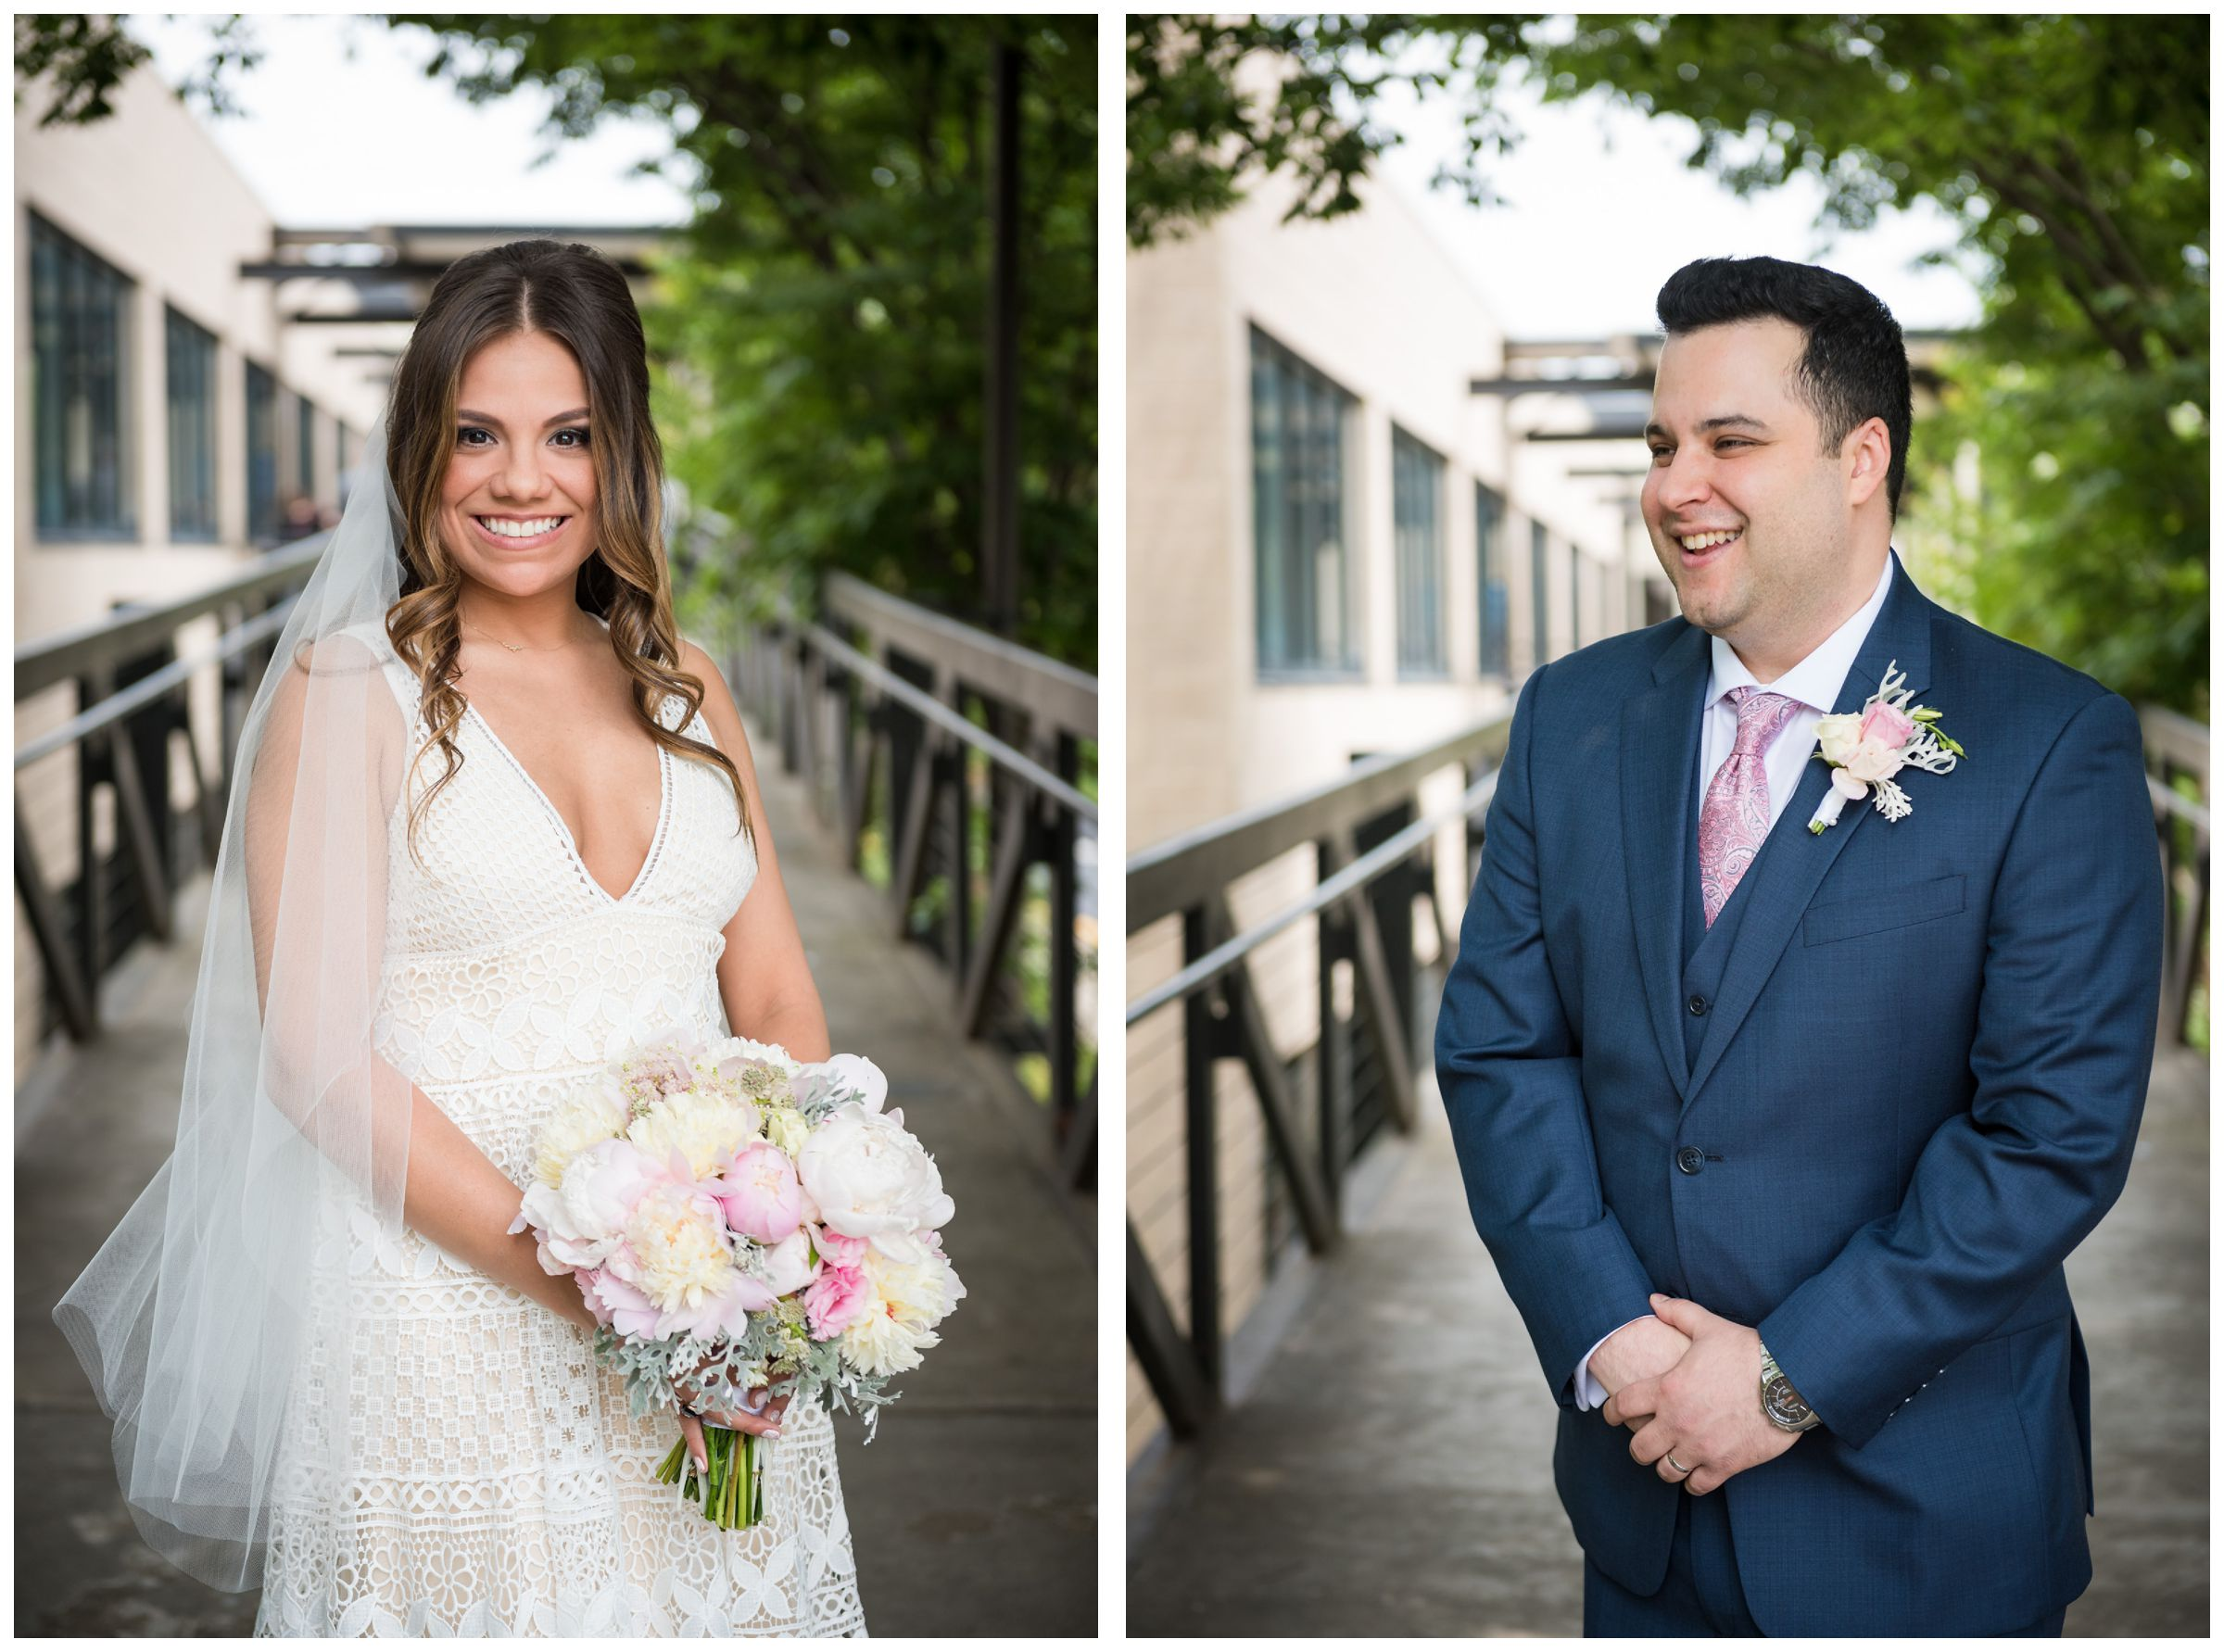 bride and groom portrait after wedding ceremony at the Unitarian Universalist Church in Arlington, Virginia